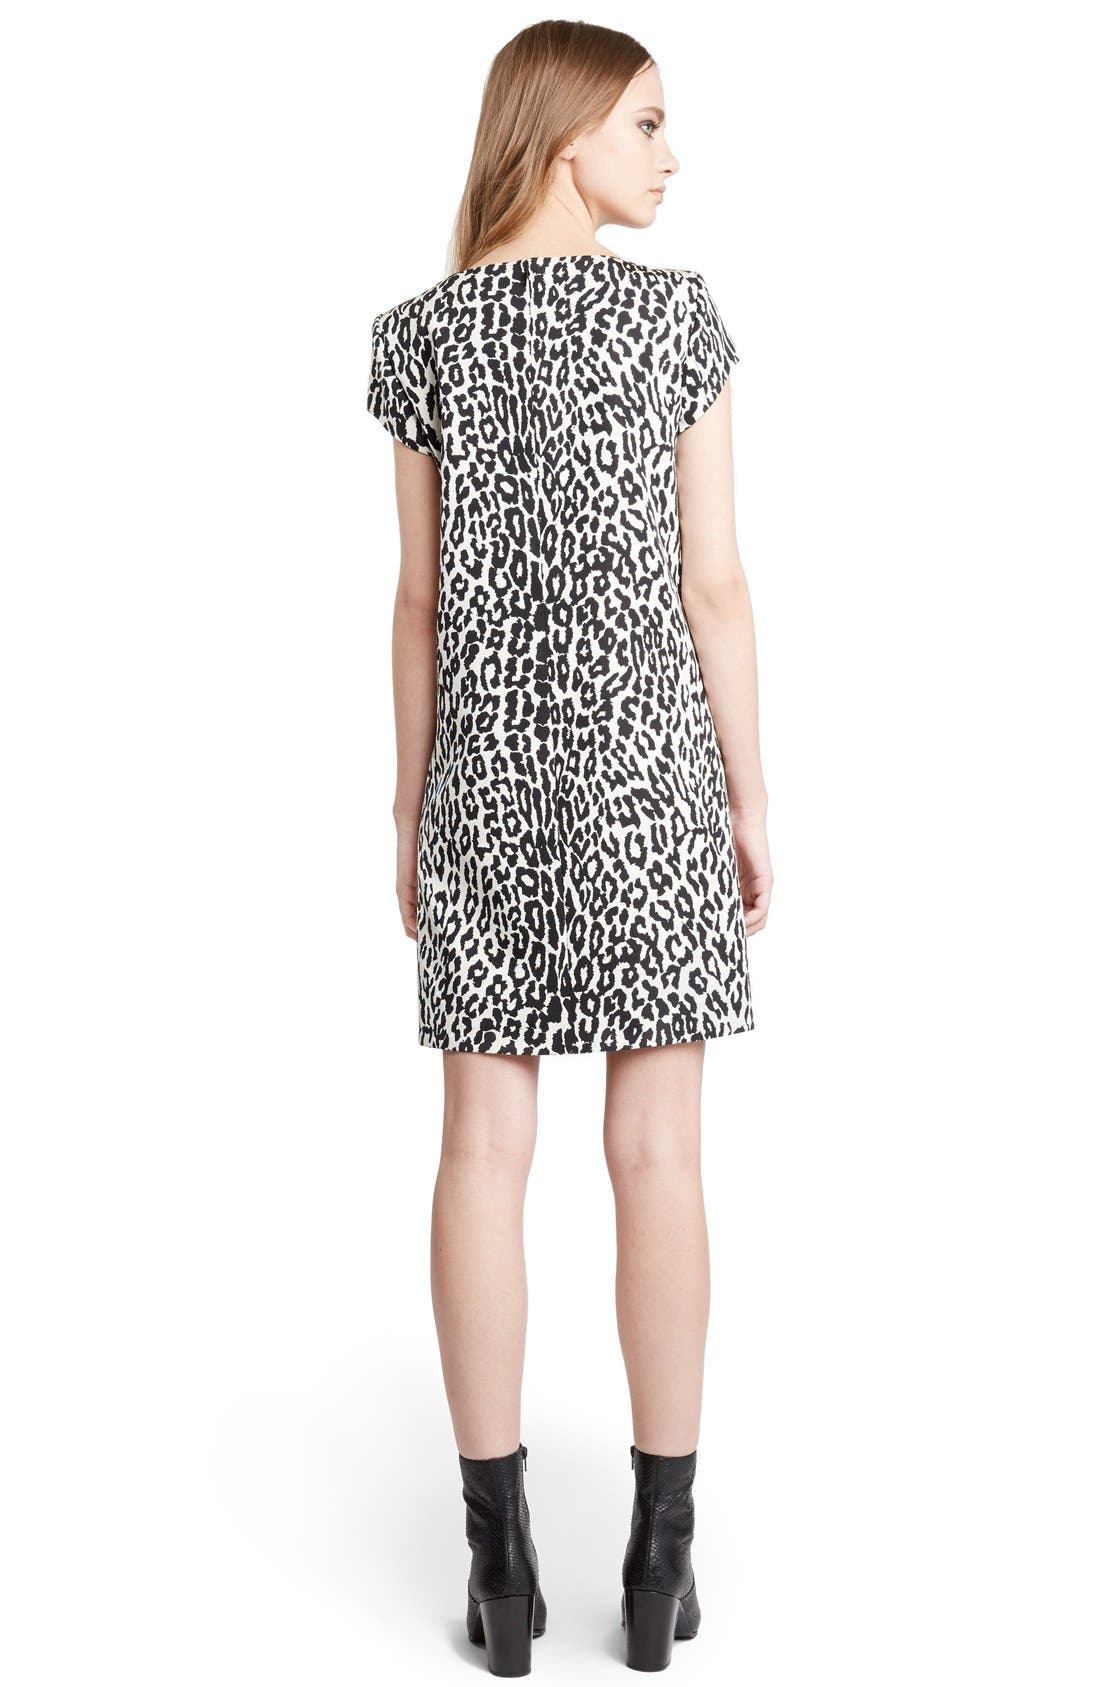 Leopard Print Shift Dress,                             Alternate thumbnail 2, color,                             126